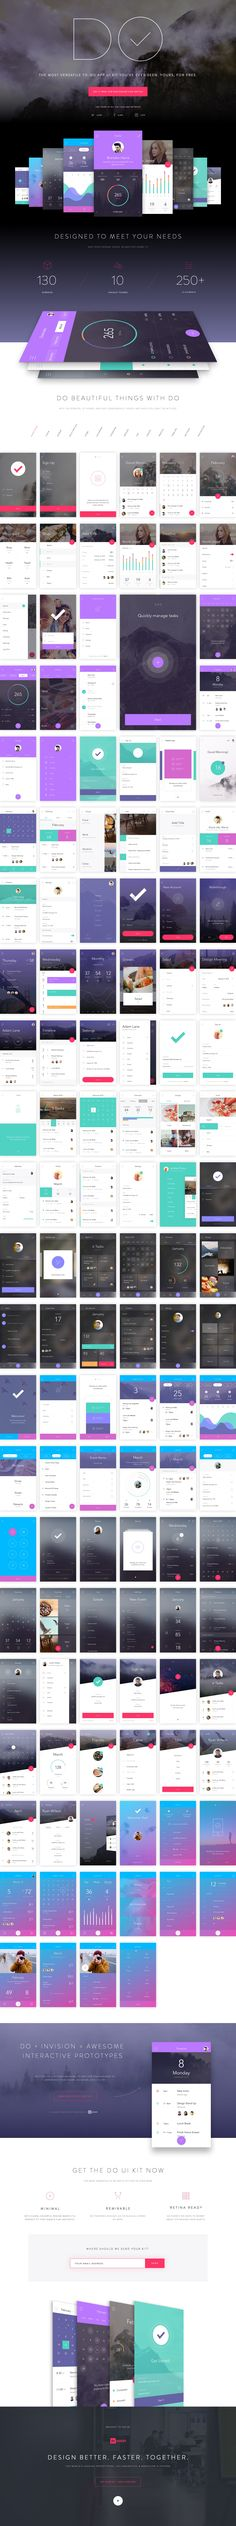 Get DO UI Kit for Photoshop & Sketch by Anton Aheichanka